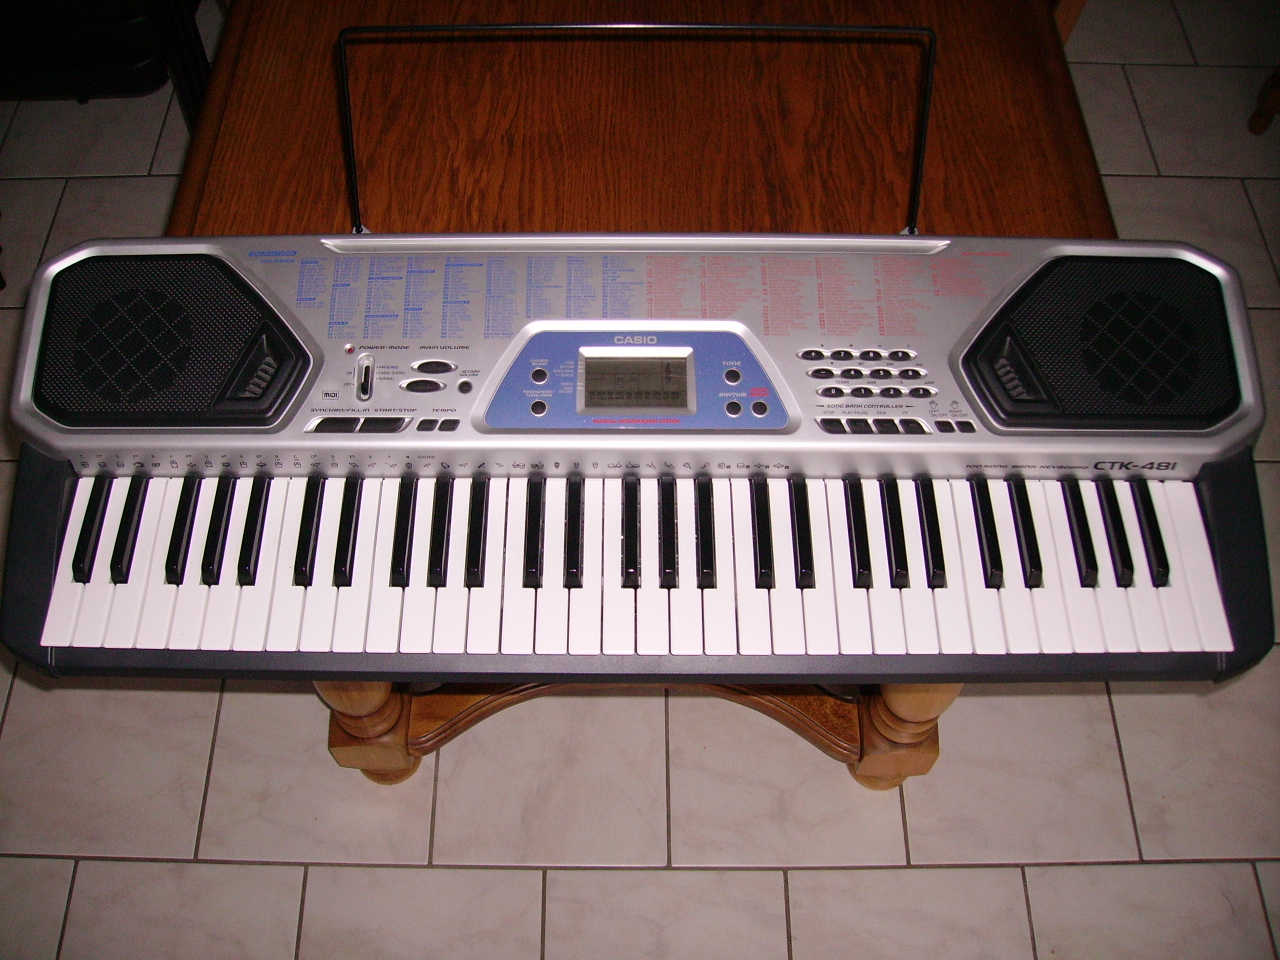 casio ctk 481